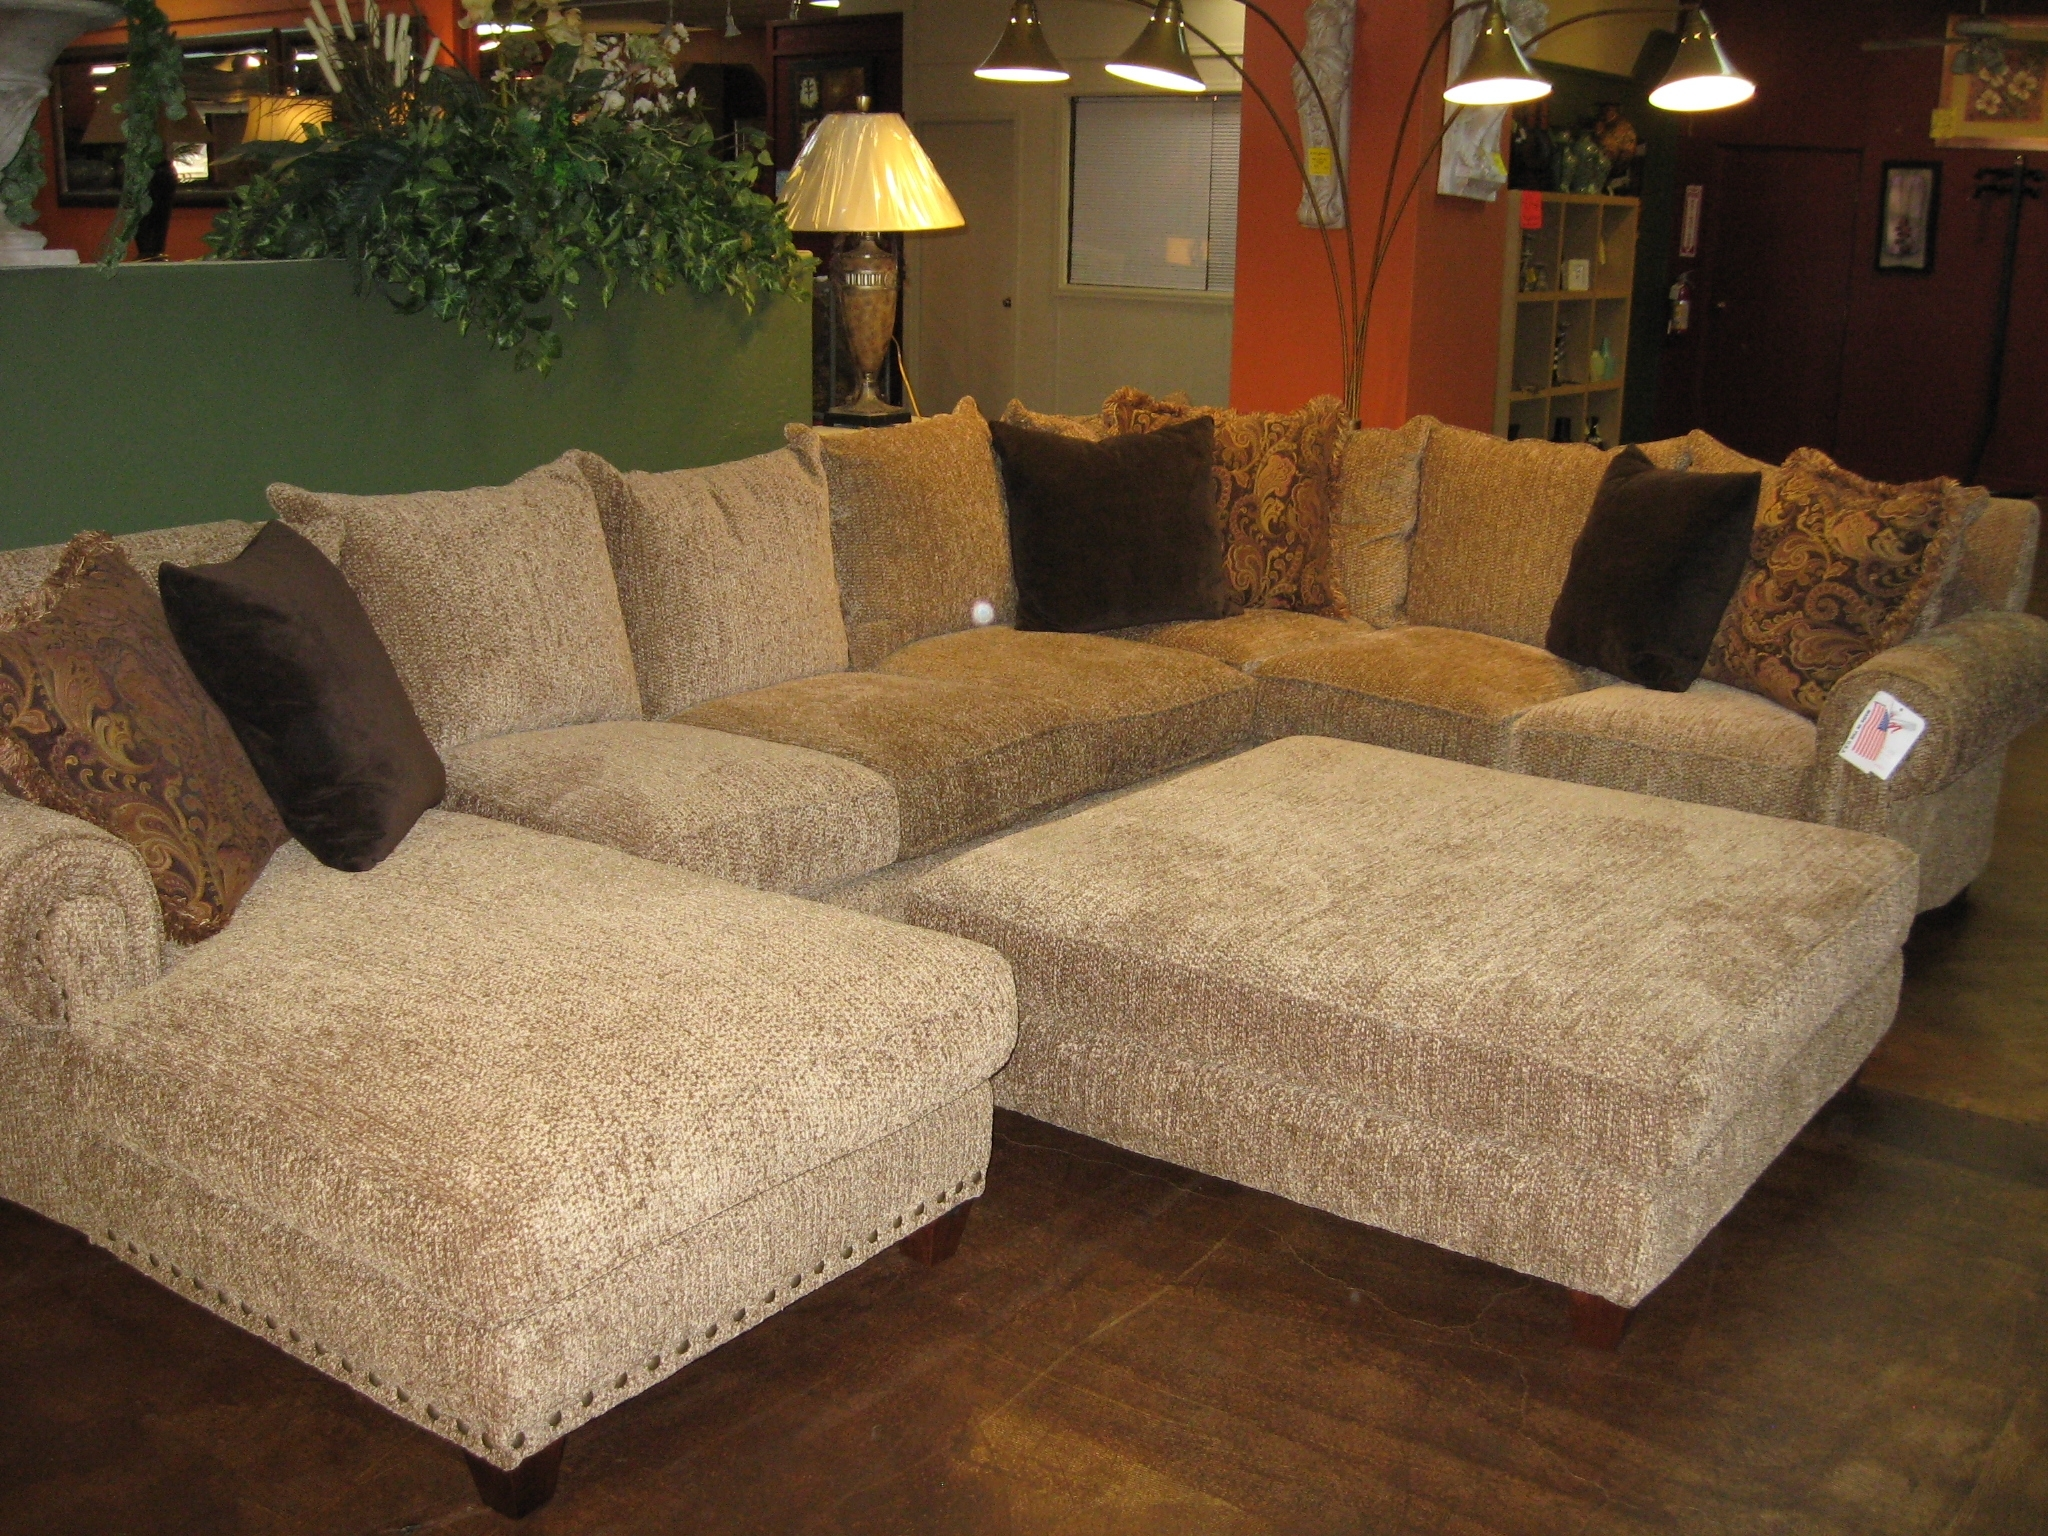 Elegant Large Sectional Sofa With Ottoman 52 With Additional Modern With Sofas With Large Ottoman (View 3 of 10)